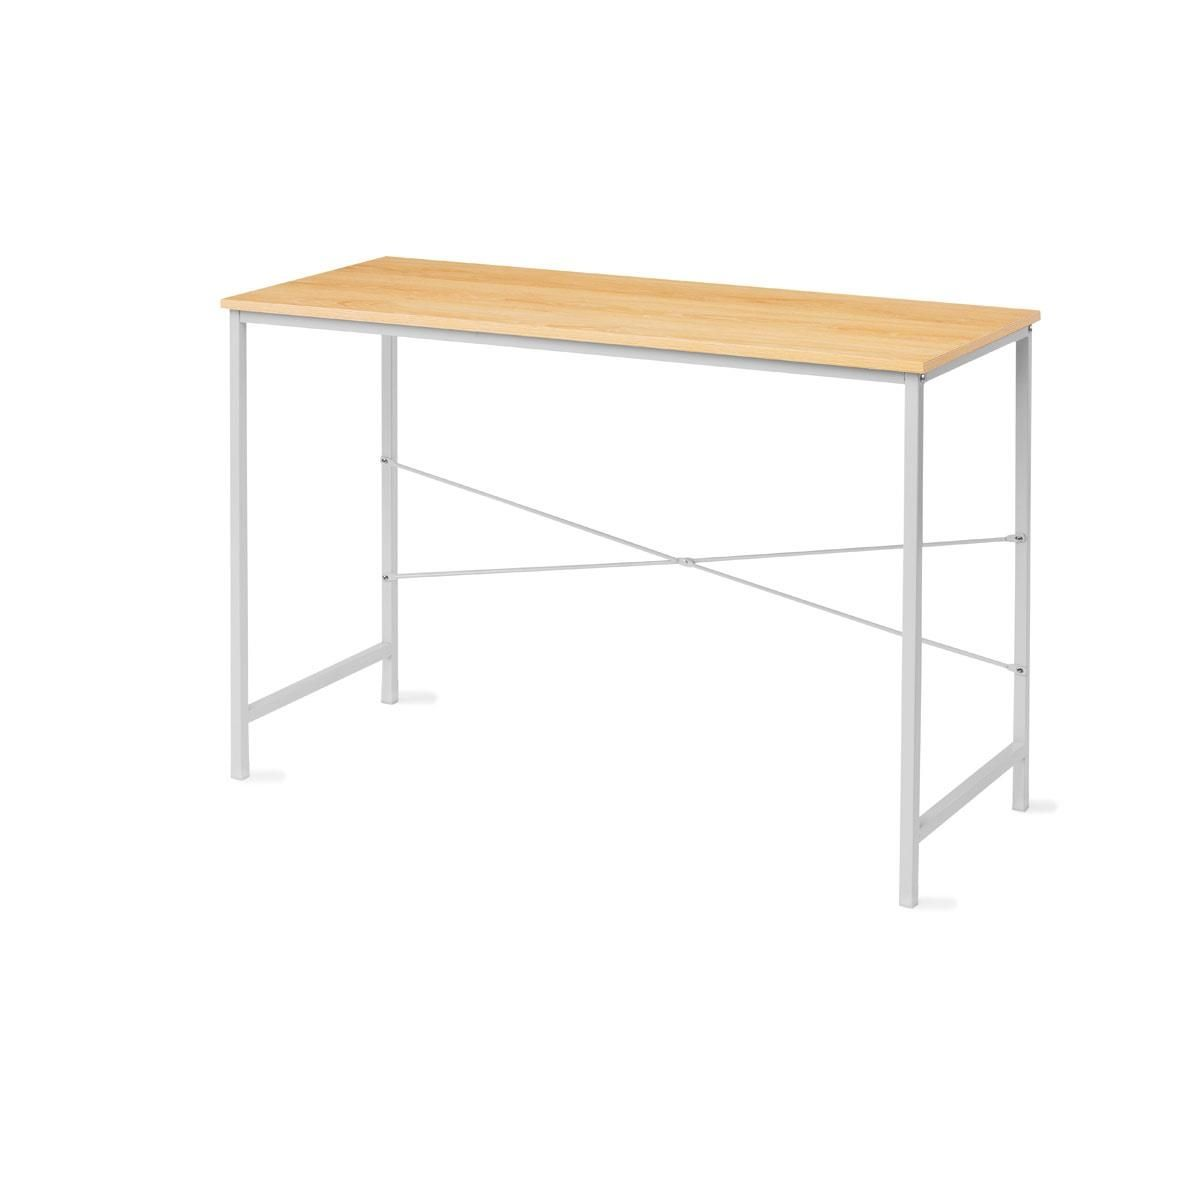 Desk Scandi Essential Homemaker. $39, Dimensions: 75cm (H